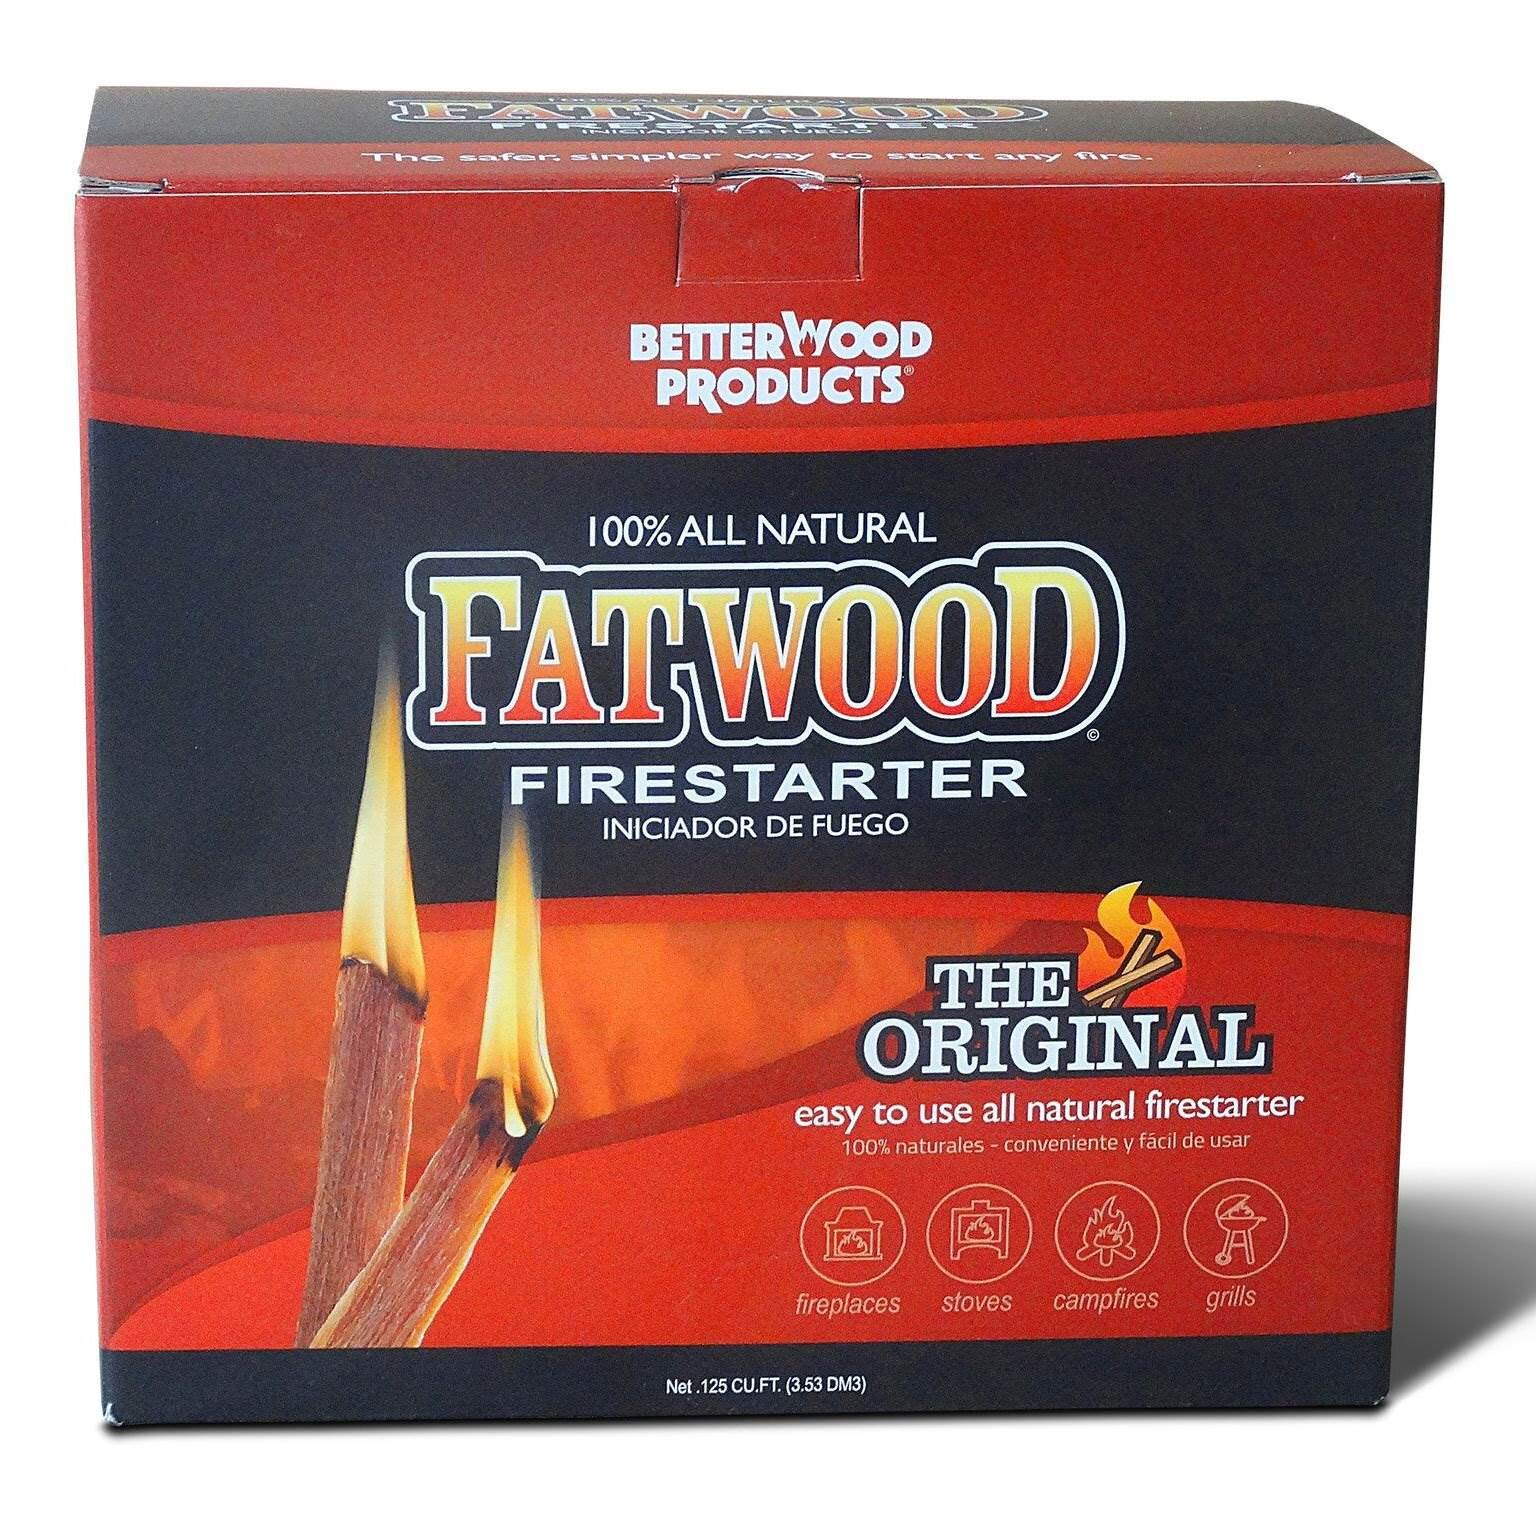 Better Wood Products Fatwood Firestarter Box, 10-Pounds by Better Wood Products